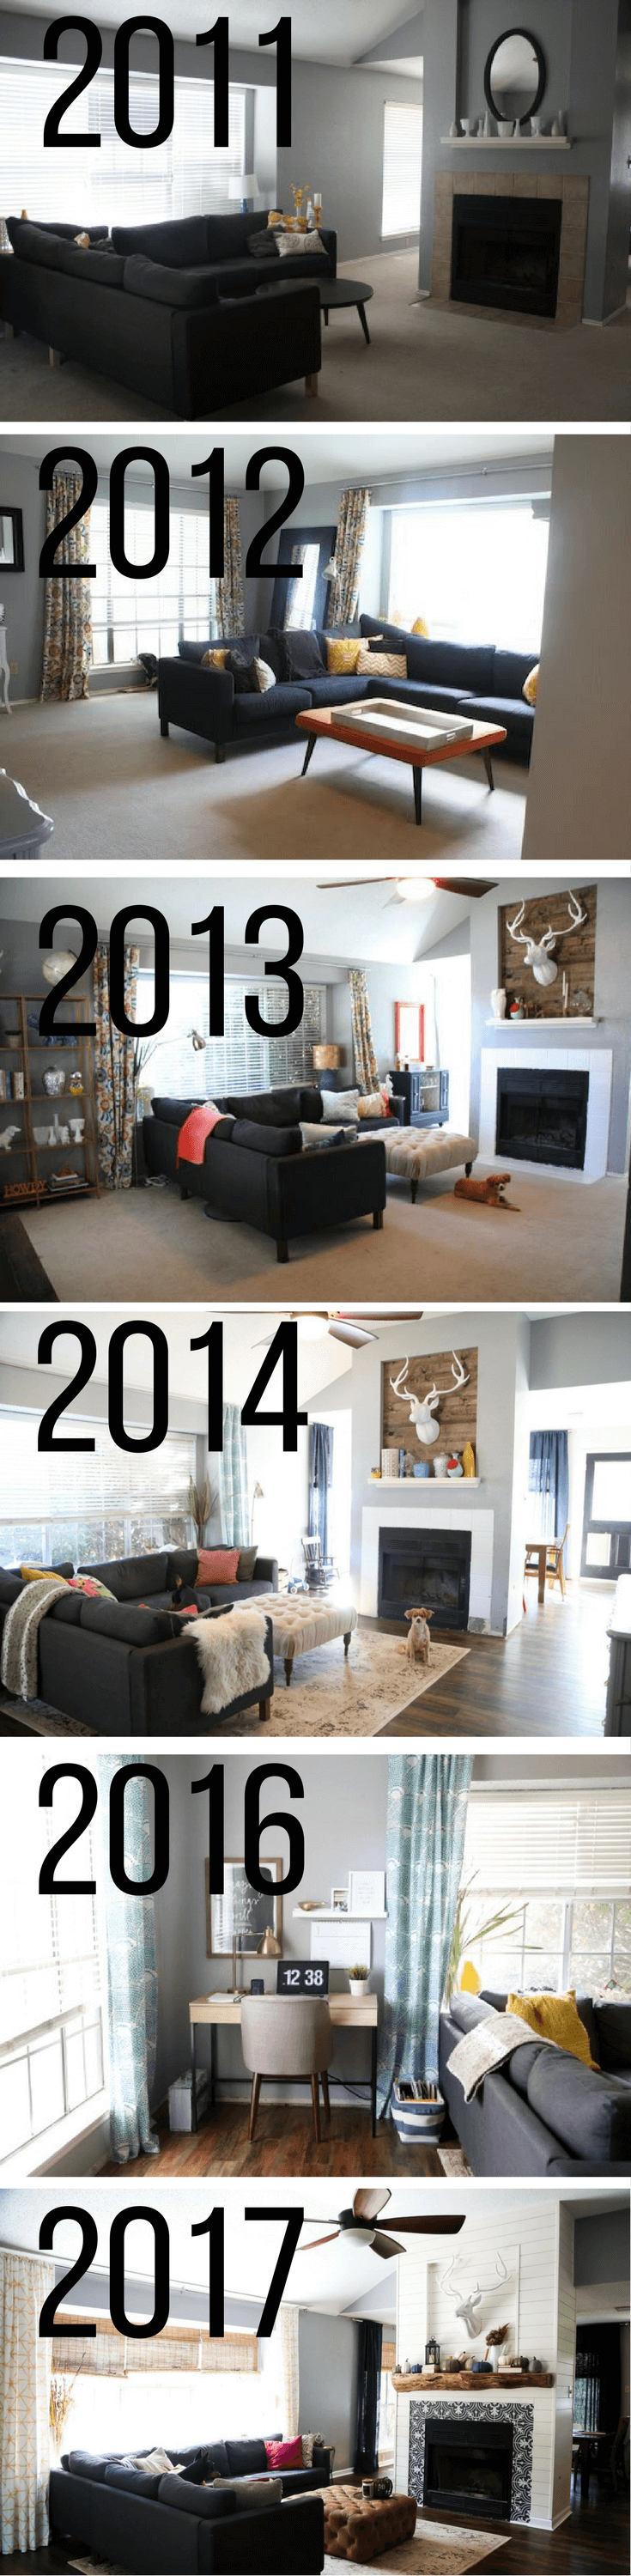 Before And After Living Room Renovation   Photos Of A Living Room  Transformation